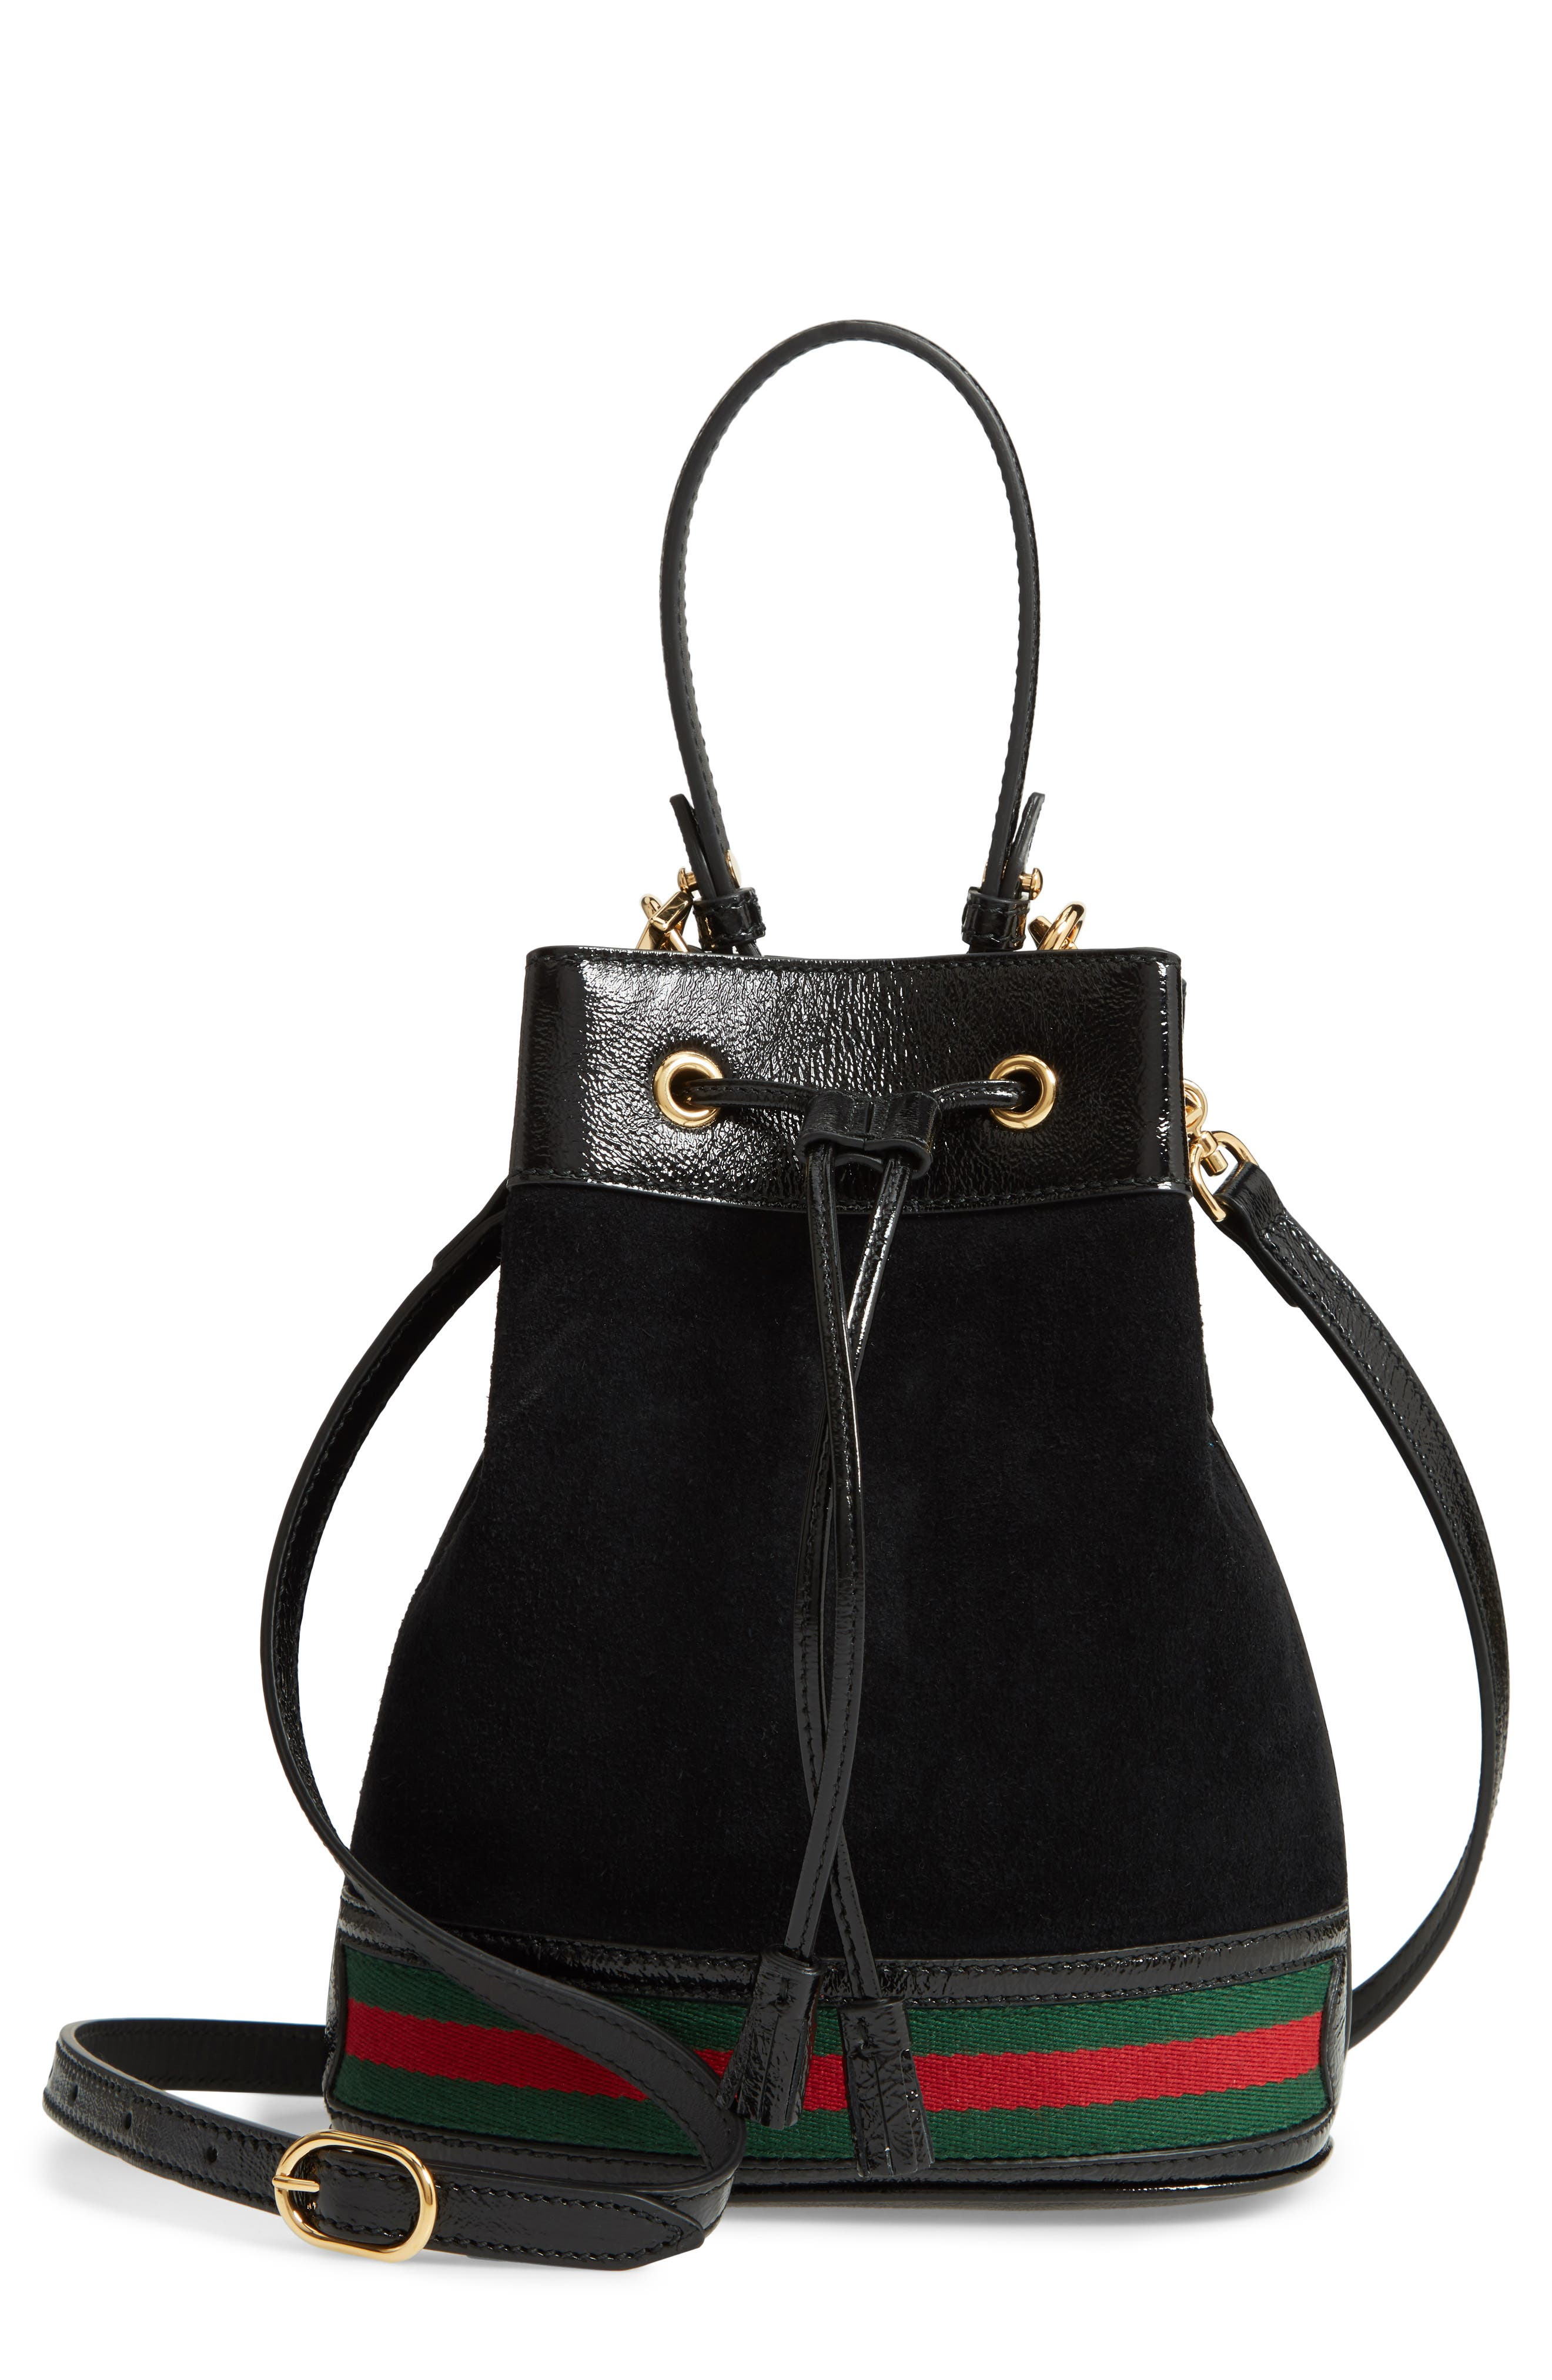 Small Ophidia Suede & Leather Bucket Bag - Black in Nero/ Vert/ Red